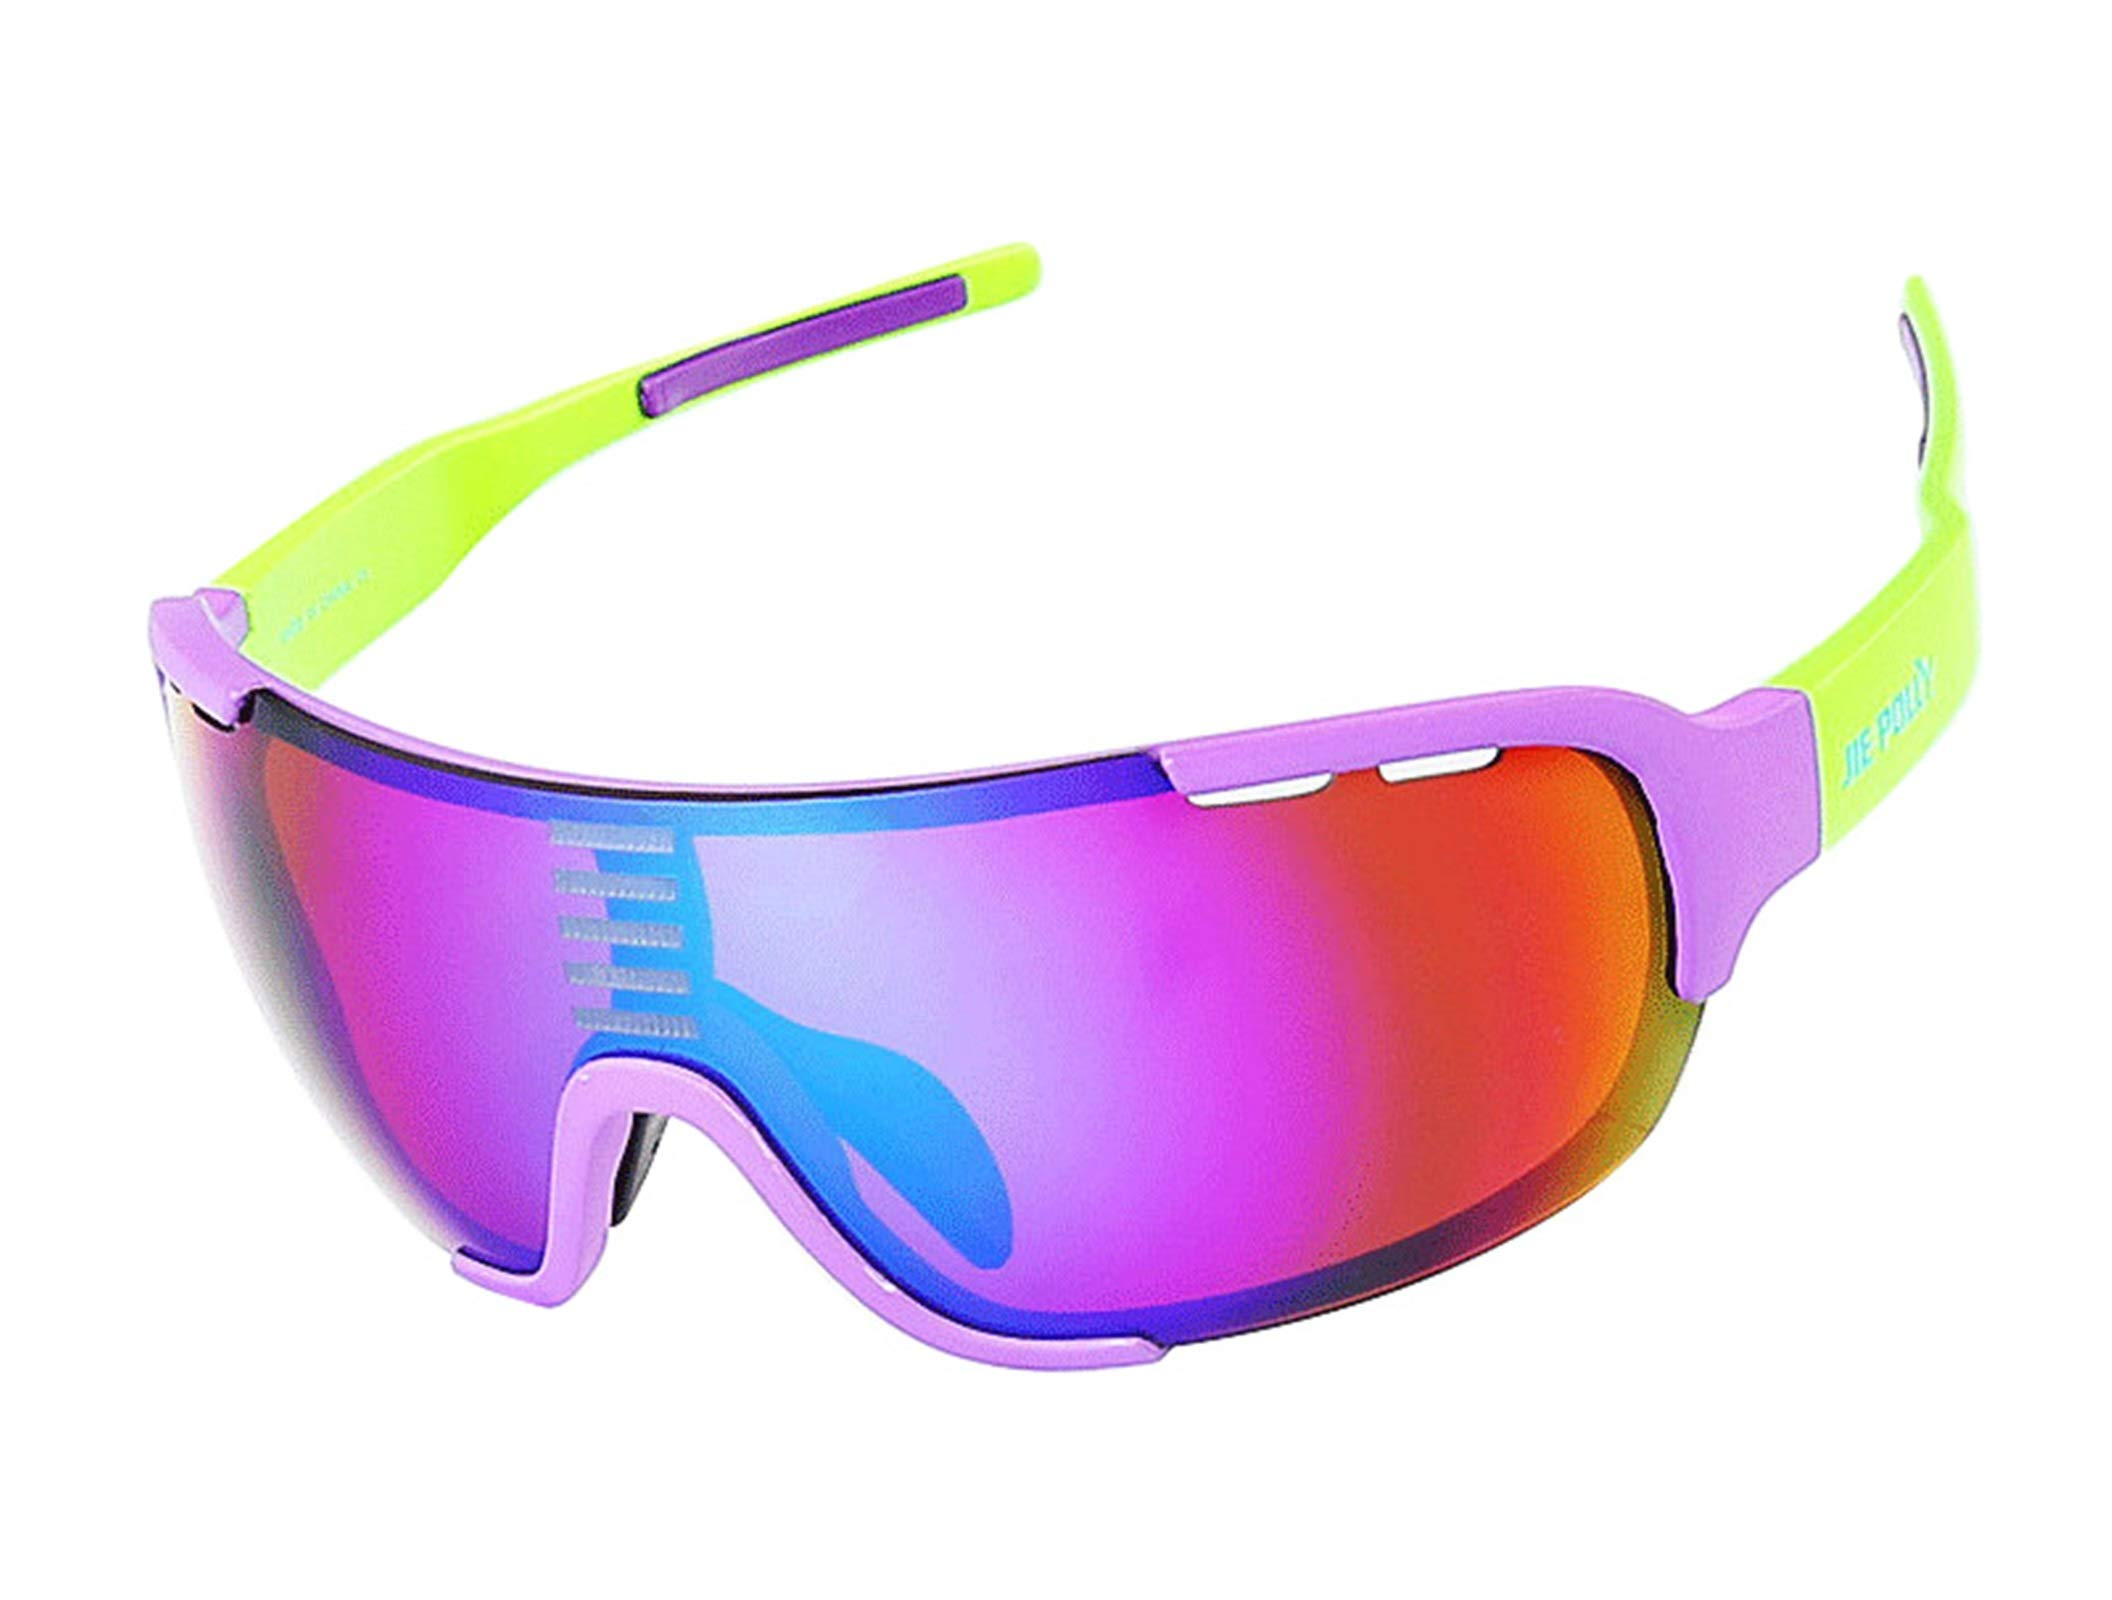 Adisaer Safety Protection Goggles Cycling Color Changing Sports Fishing Outdoor Hiking Goggles Purple Green for Adults